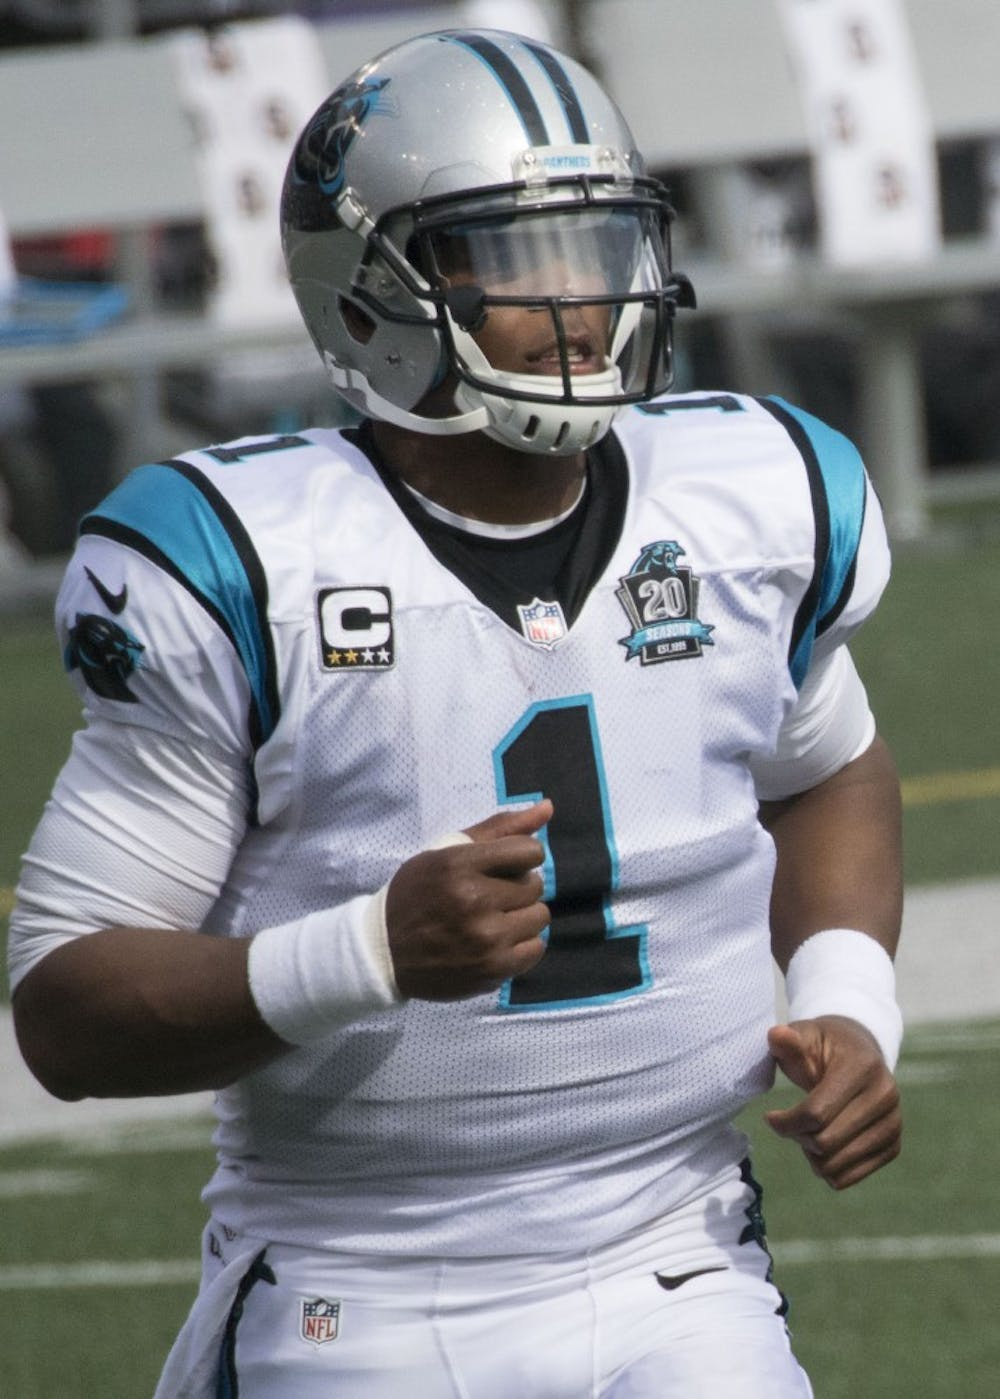 Cam Newton bitter after Super Bowl loss due to pressure from press